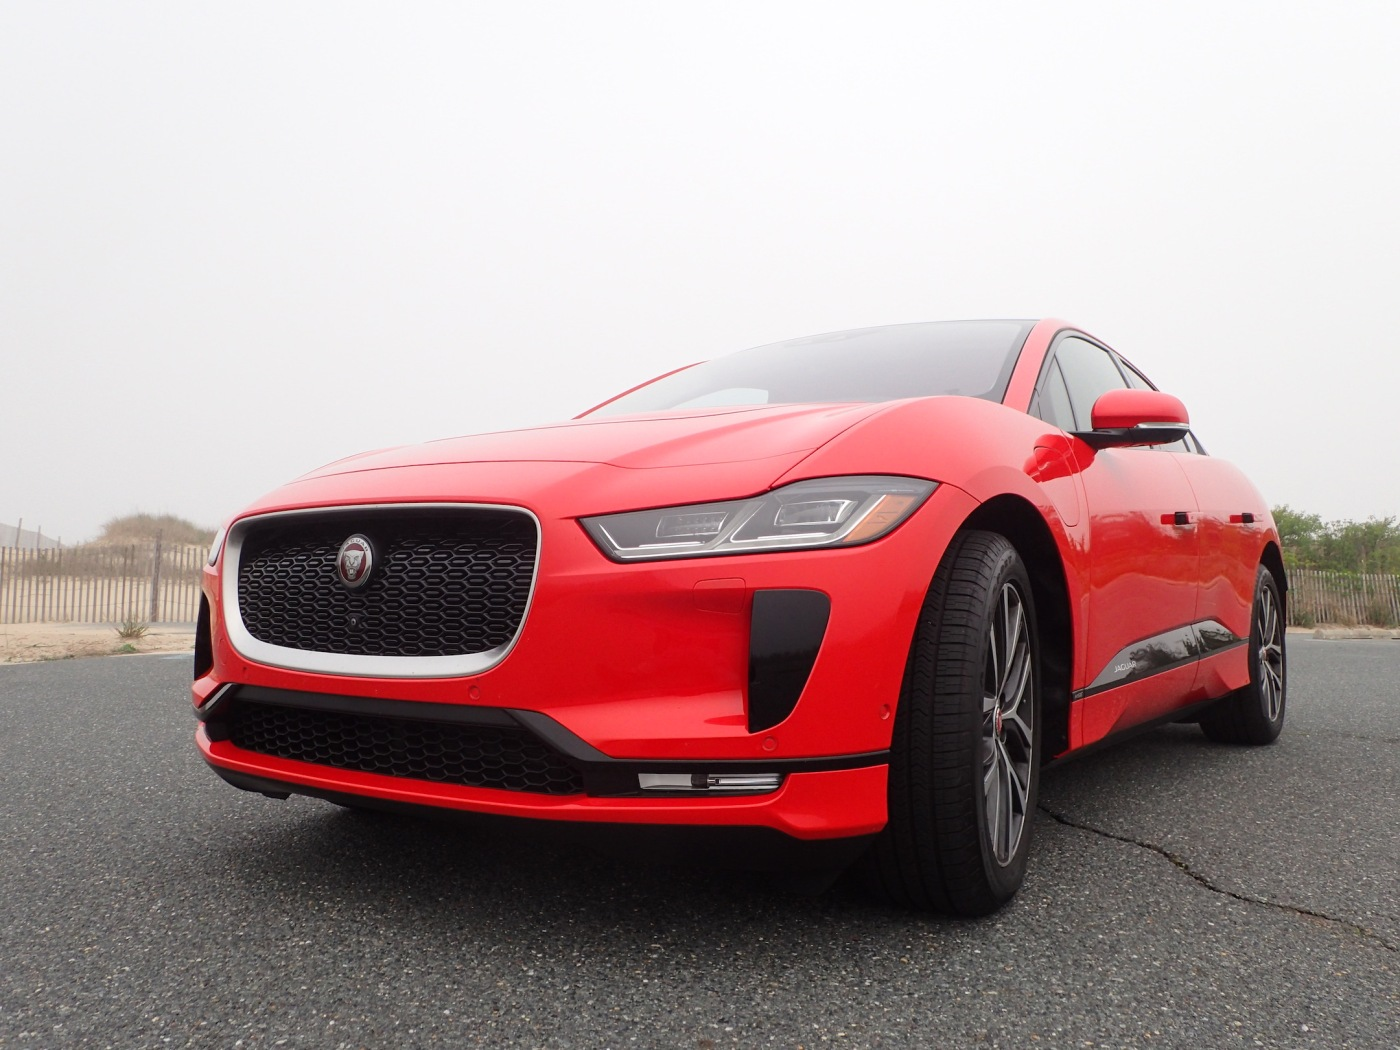 2019 Jaguar I-PACE: Driving the Future – The Review Garage